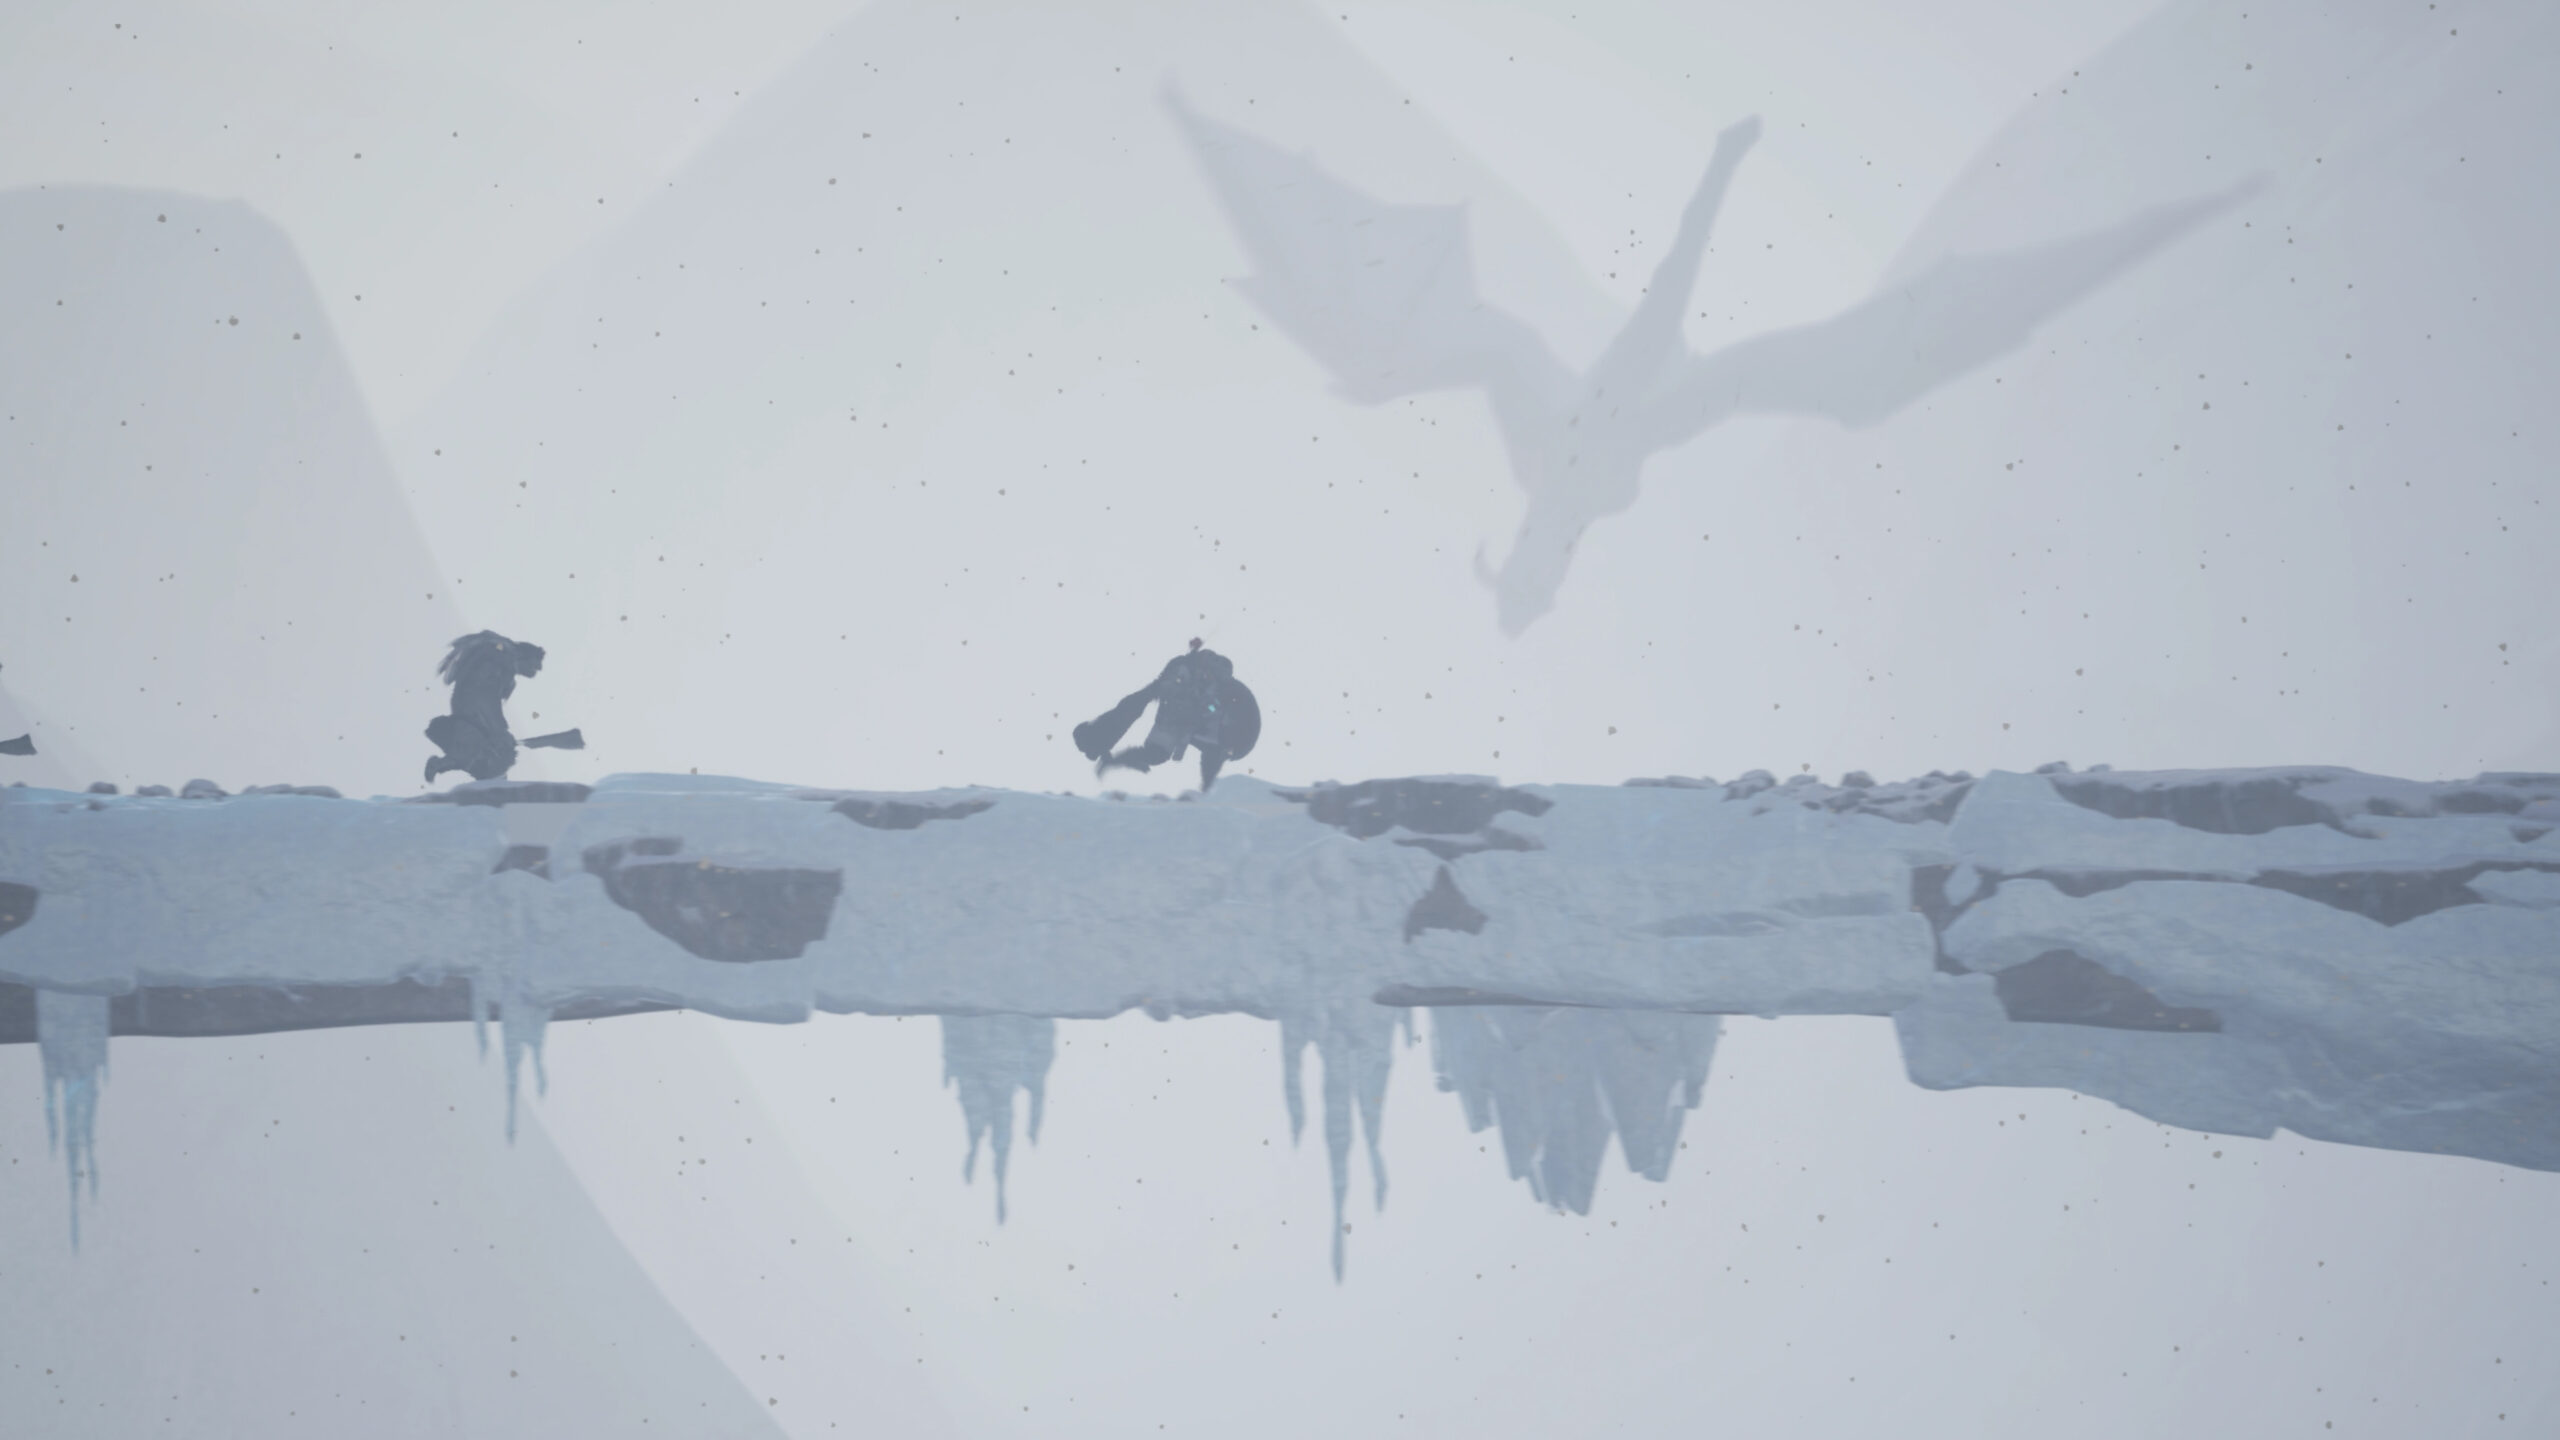 A Viking warrior trudges across a wintery landscape beset by enemies and there is a dragon.